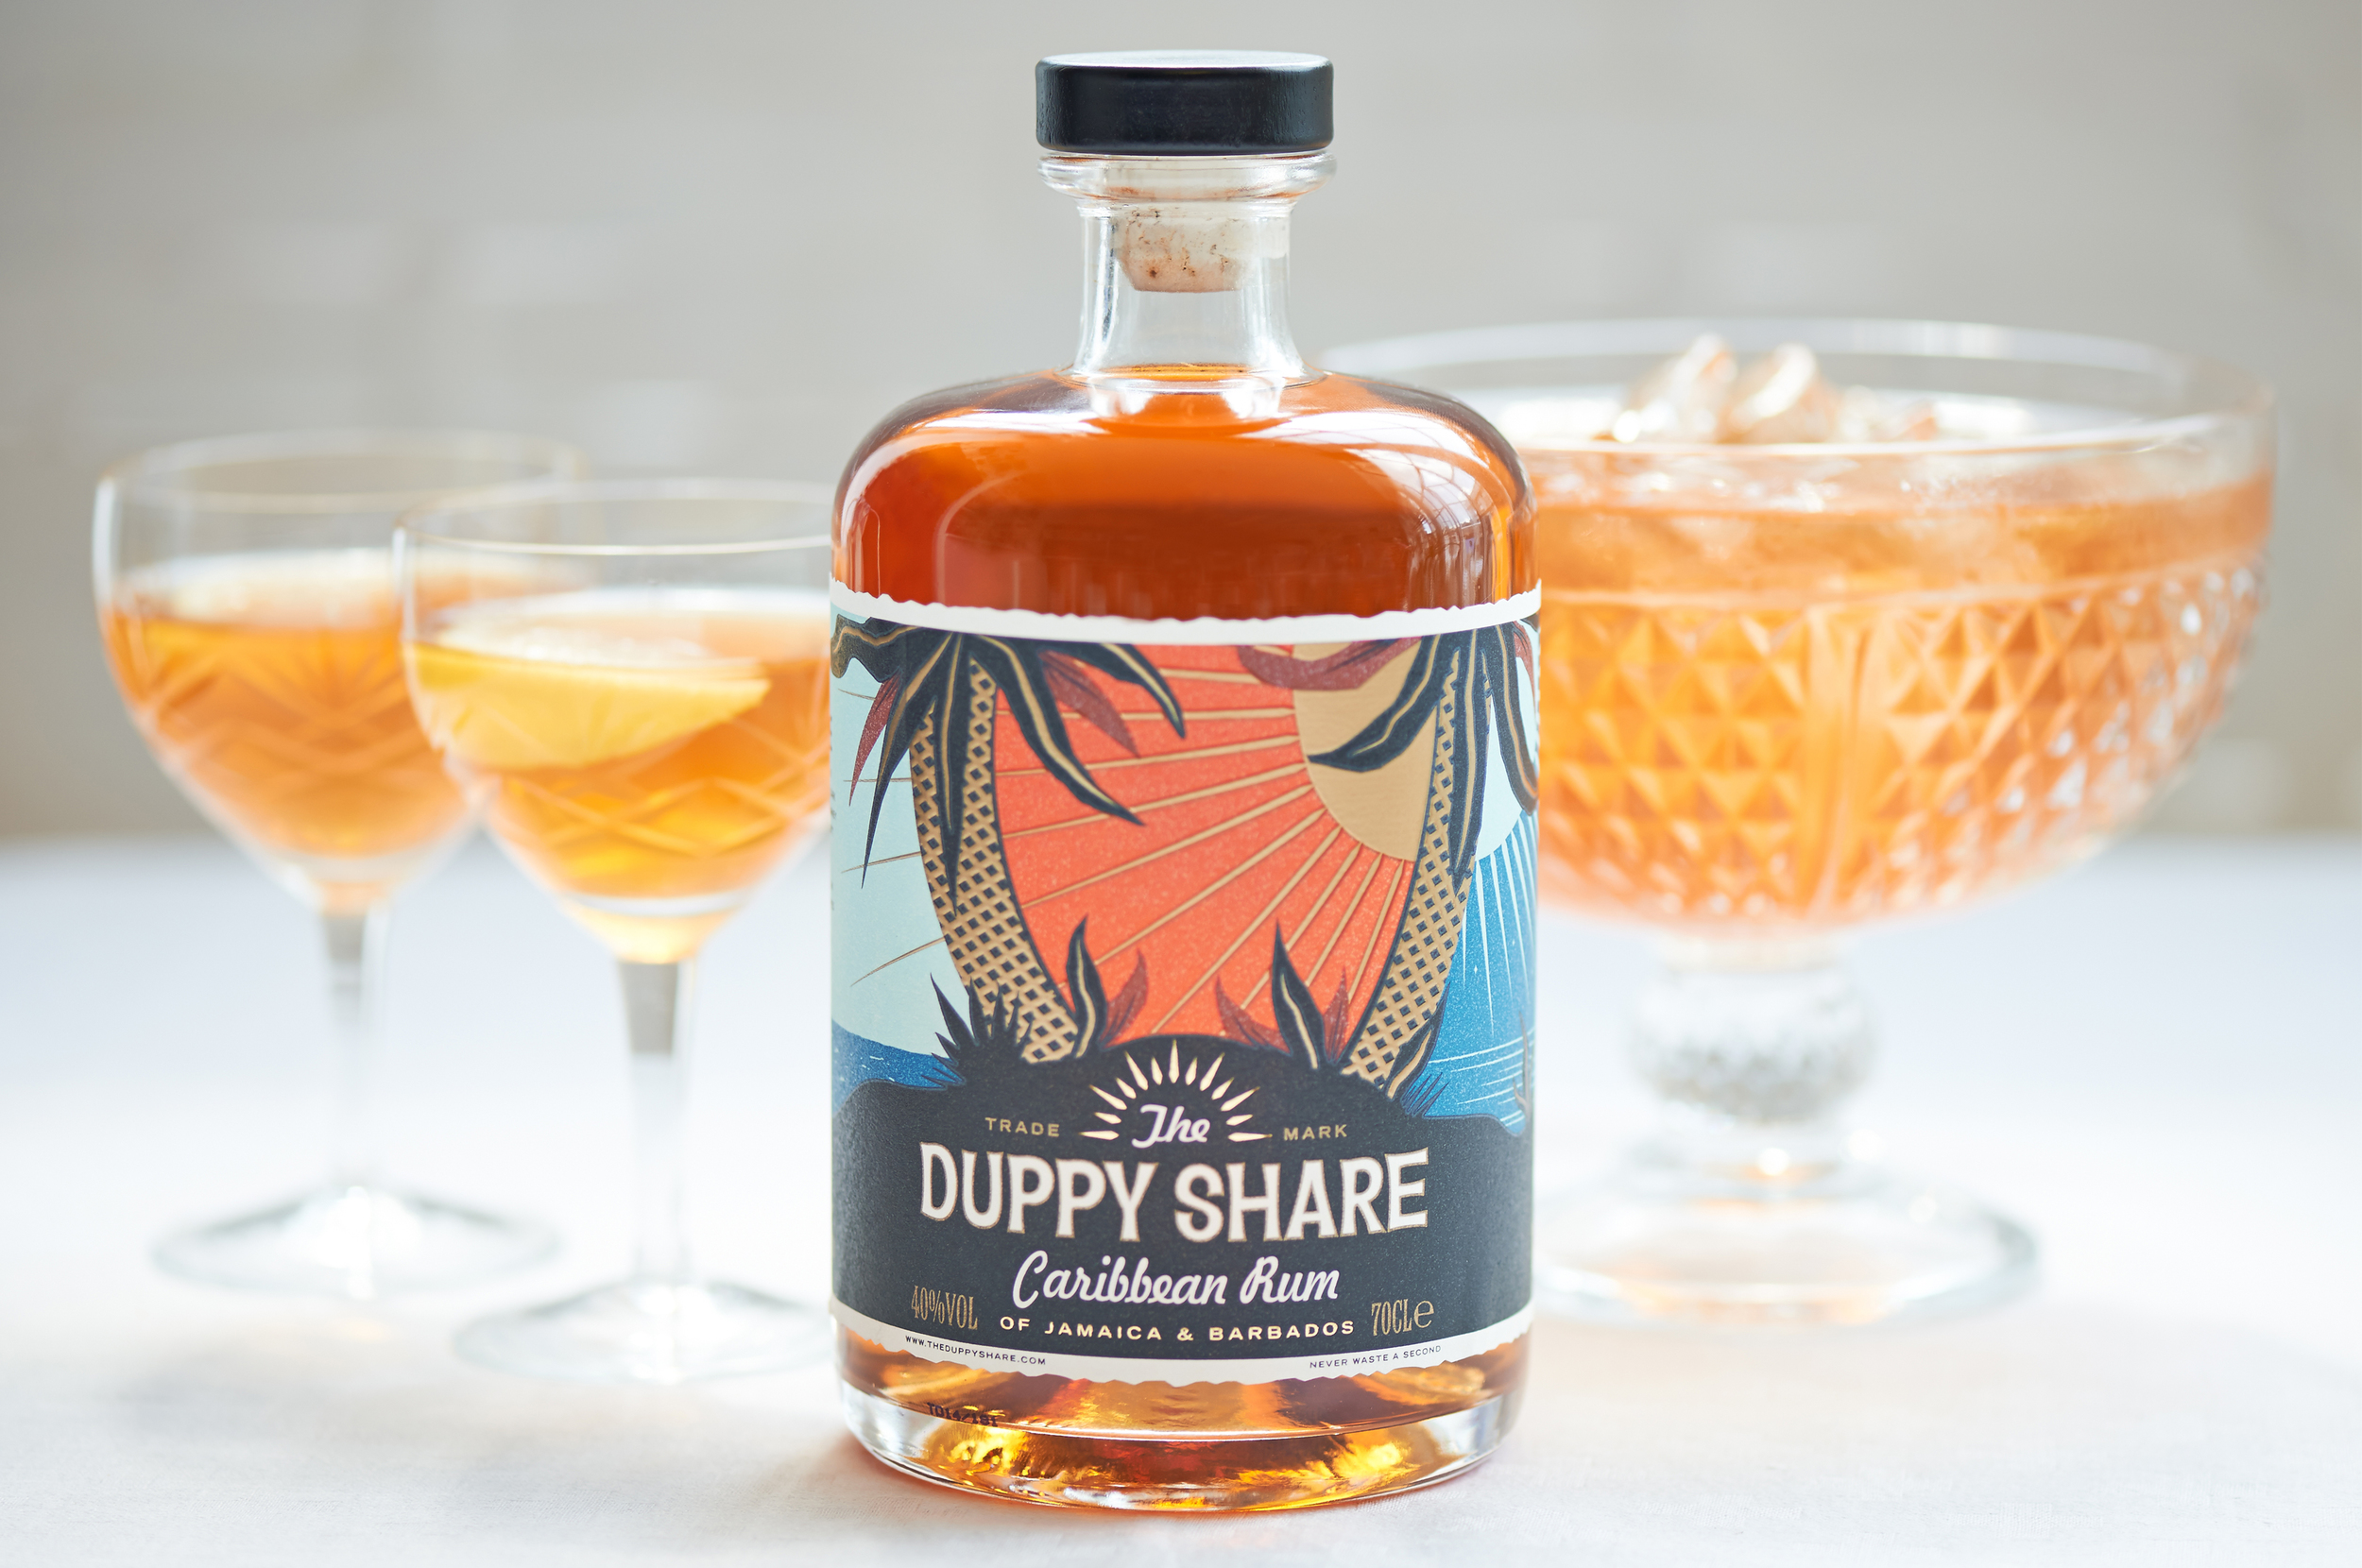 advertising imagery for Duppy Share Rum